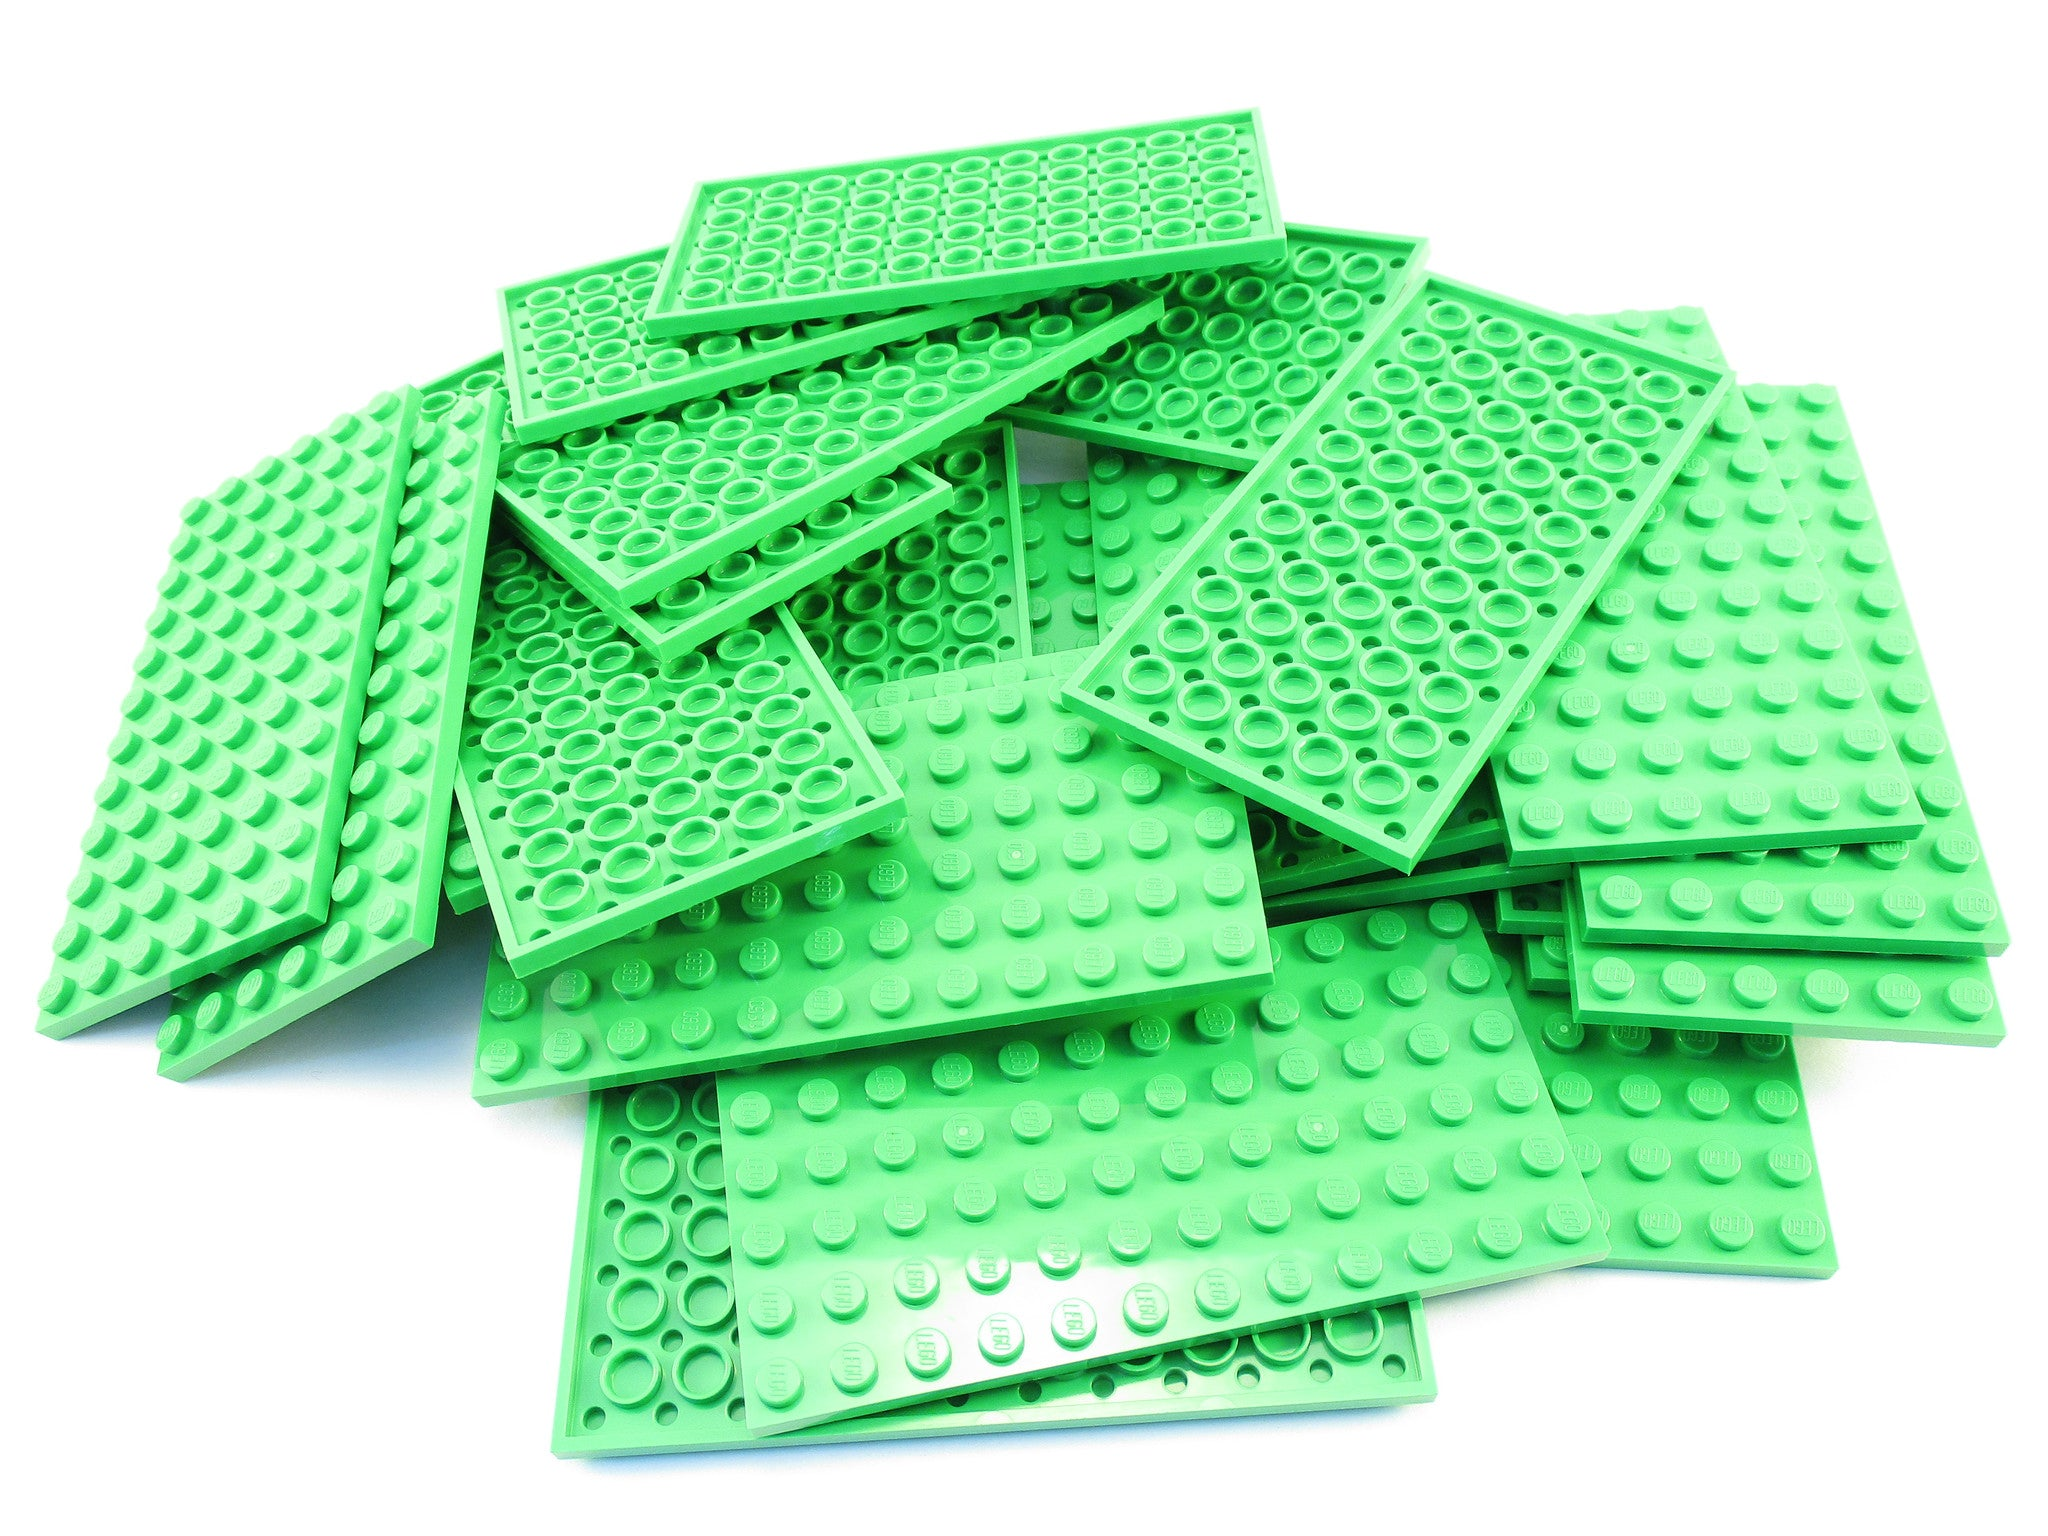 LEGO Bright Green Plate 6x12 Lot of 25 Parts Pieces 3028